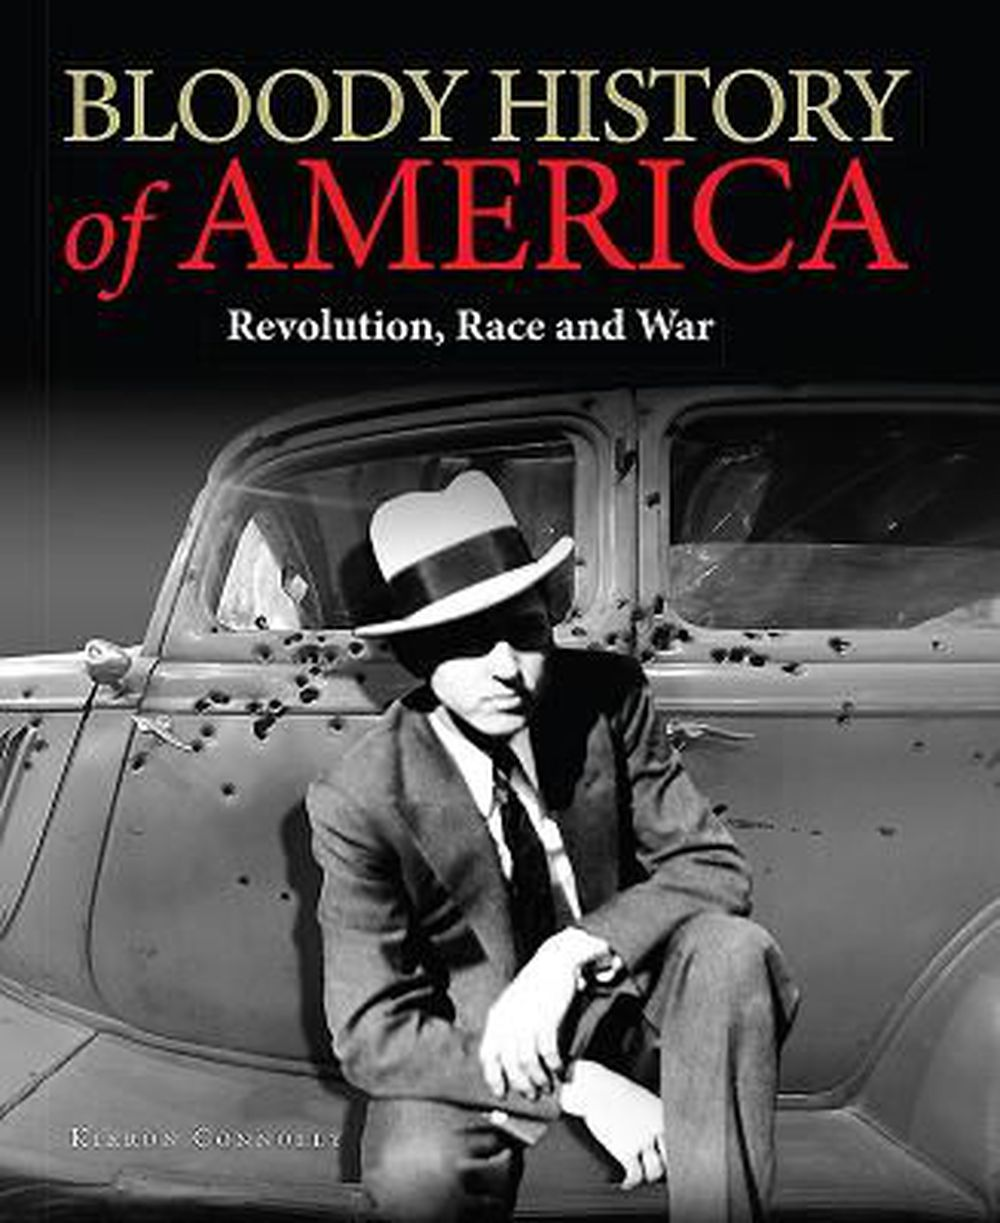 Bloody History of America: Revolution, Race and War